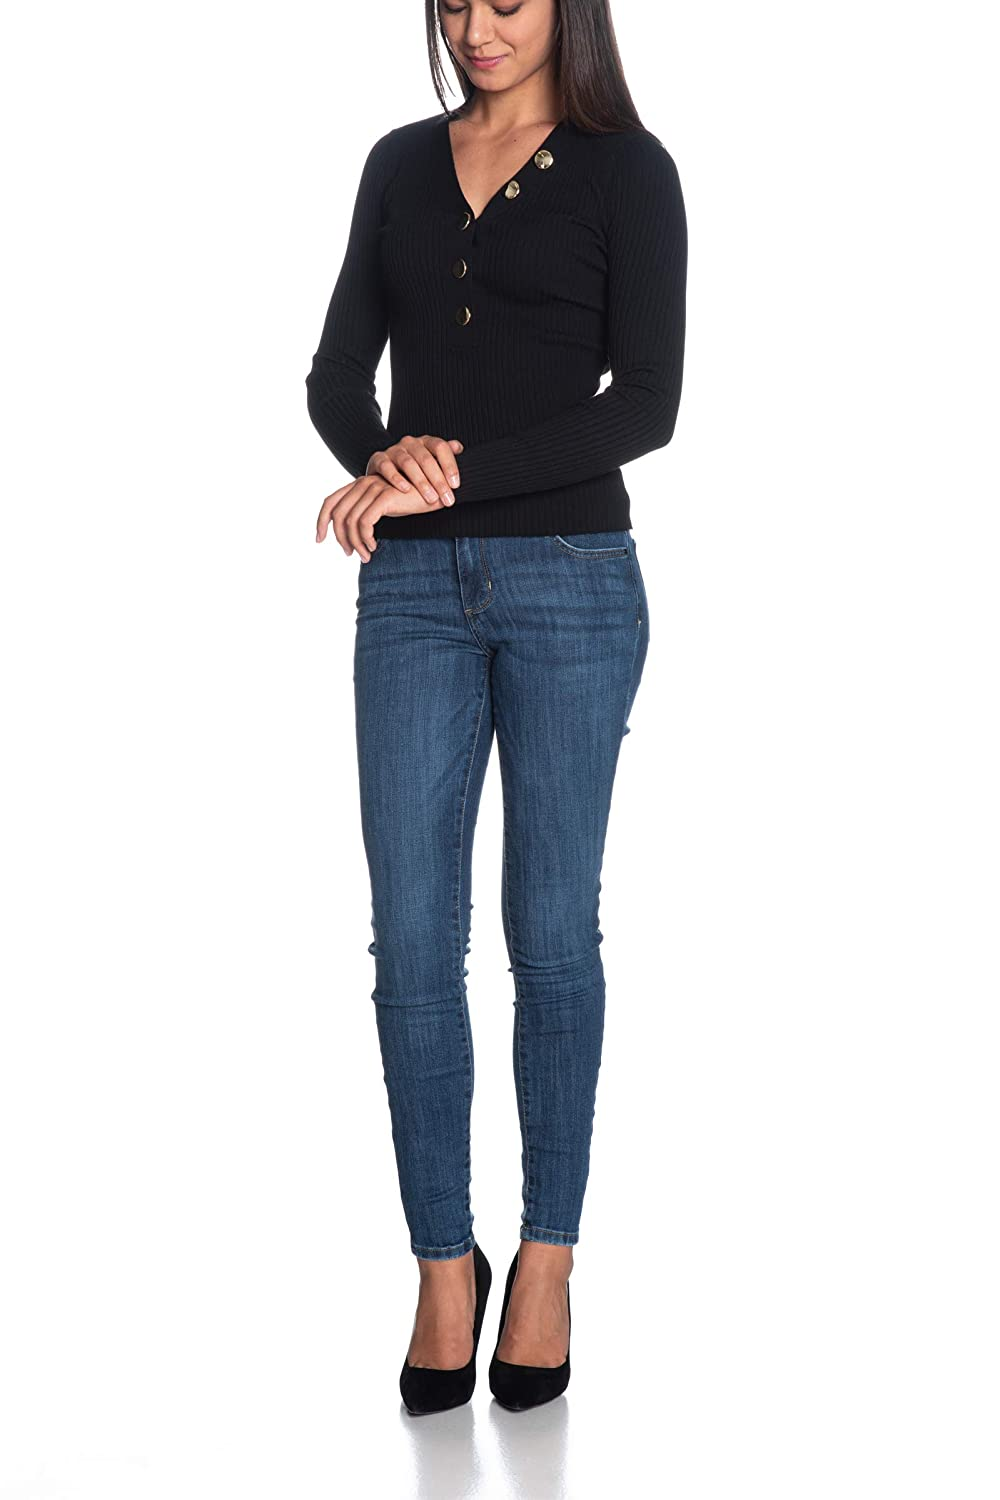 Guess Annette Jeans Skinny Donna